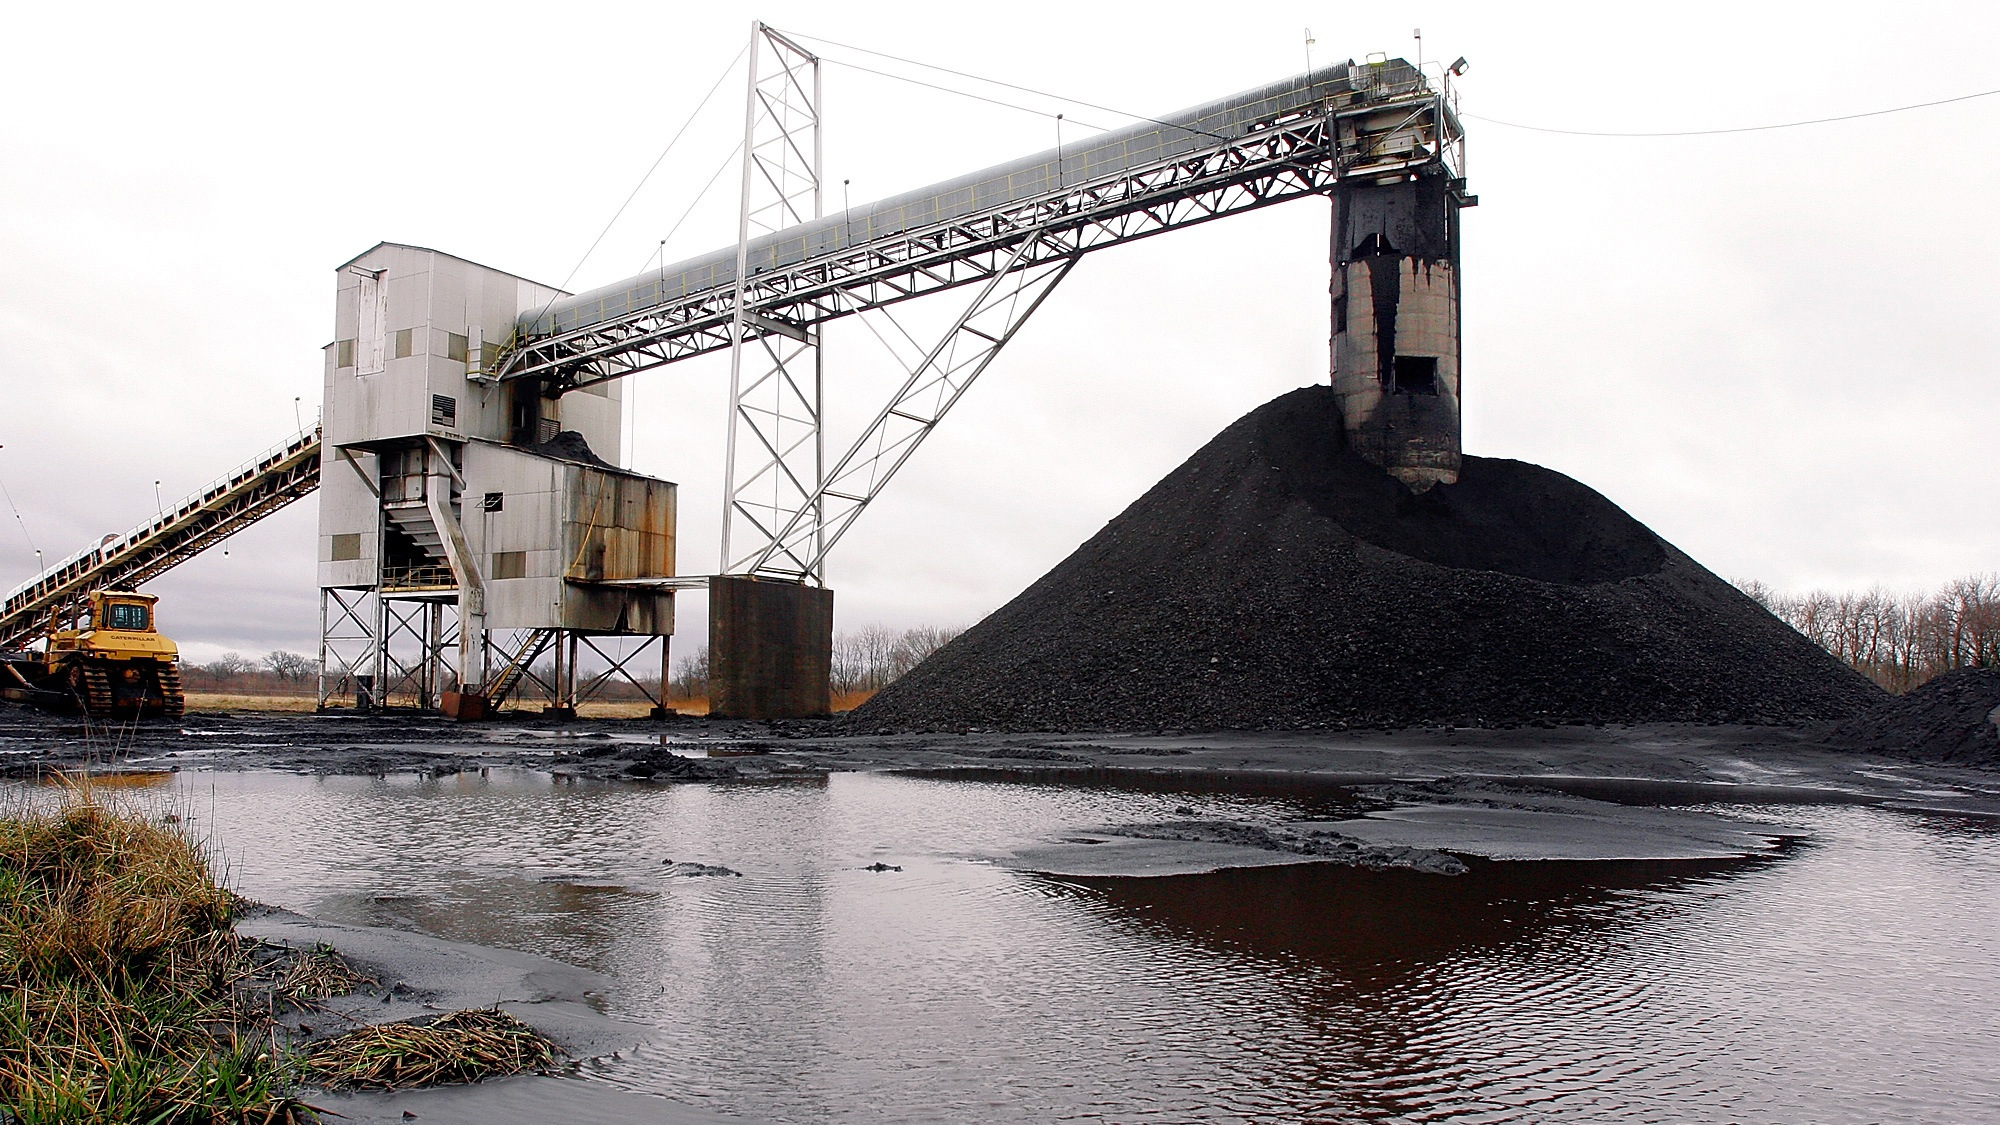 **ADVANCE FOR MONDAY MARCH 20**A conveyor belt moves underground mined coal to the surface at Peabody Energy's Gateway Mine Thursday, March 9, 2006, near Coulterville, Ill. The raw coal brought to the surface of an underground mine by conveyor belt is piled, ready for its eventual transport to a nearby facility where it will be washed, sized and separated from any unwanted rock or debris. Illinois' coal production, which peaked in 1918 with a work force of more than 100,000, took a beating in the 1990s after the Clean Air Act required coal-fired power plants to either burn low-sulfur coal or install costly scrubbers to curb the emission of sulfur dioxide, a cause of acid rain. (AP Photo/Seth Perlman)